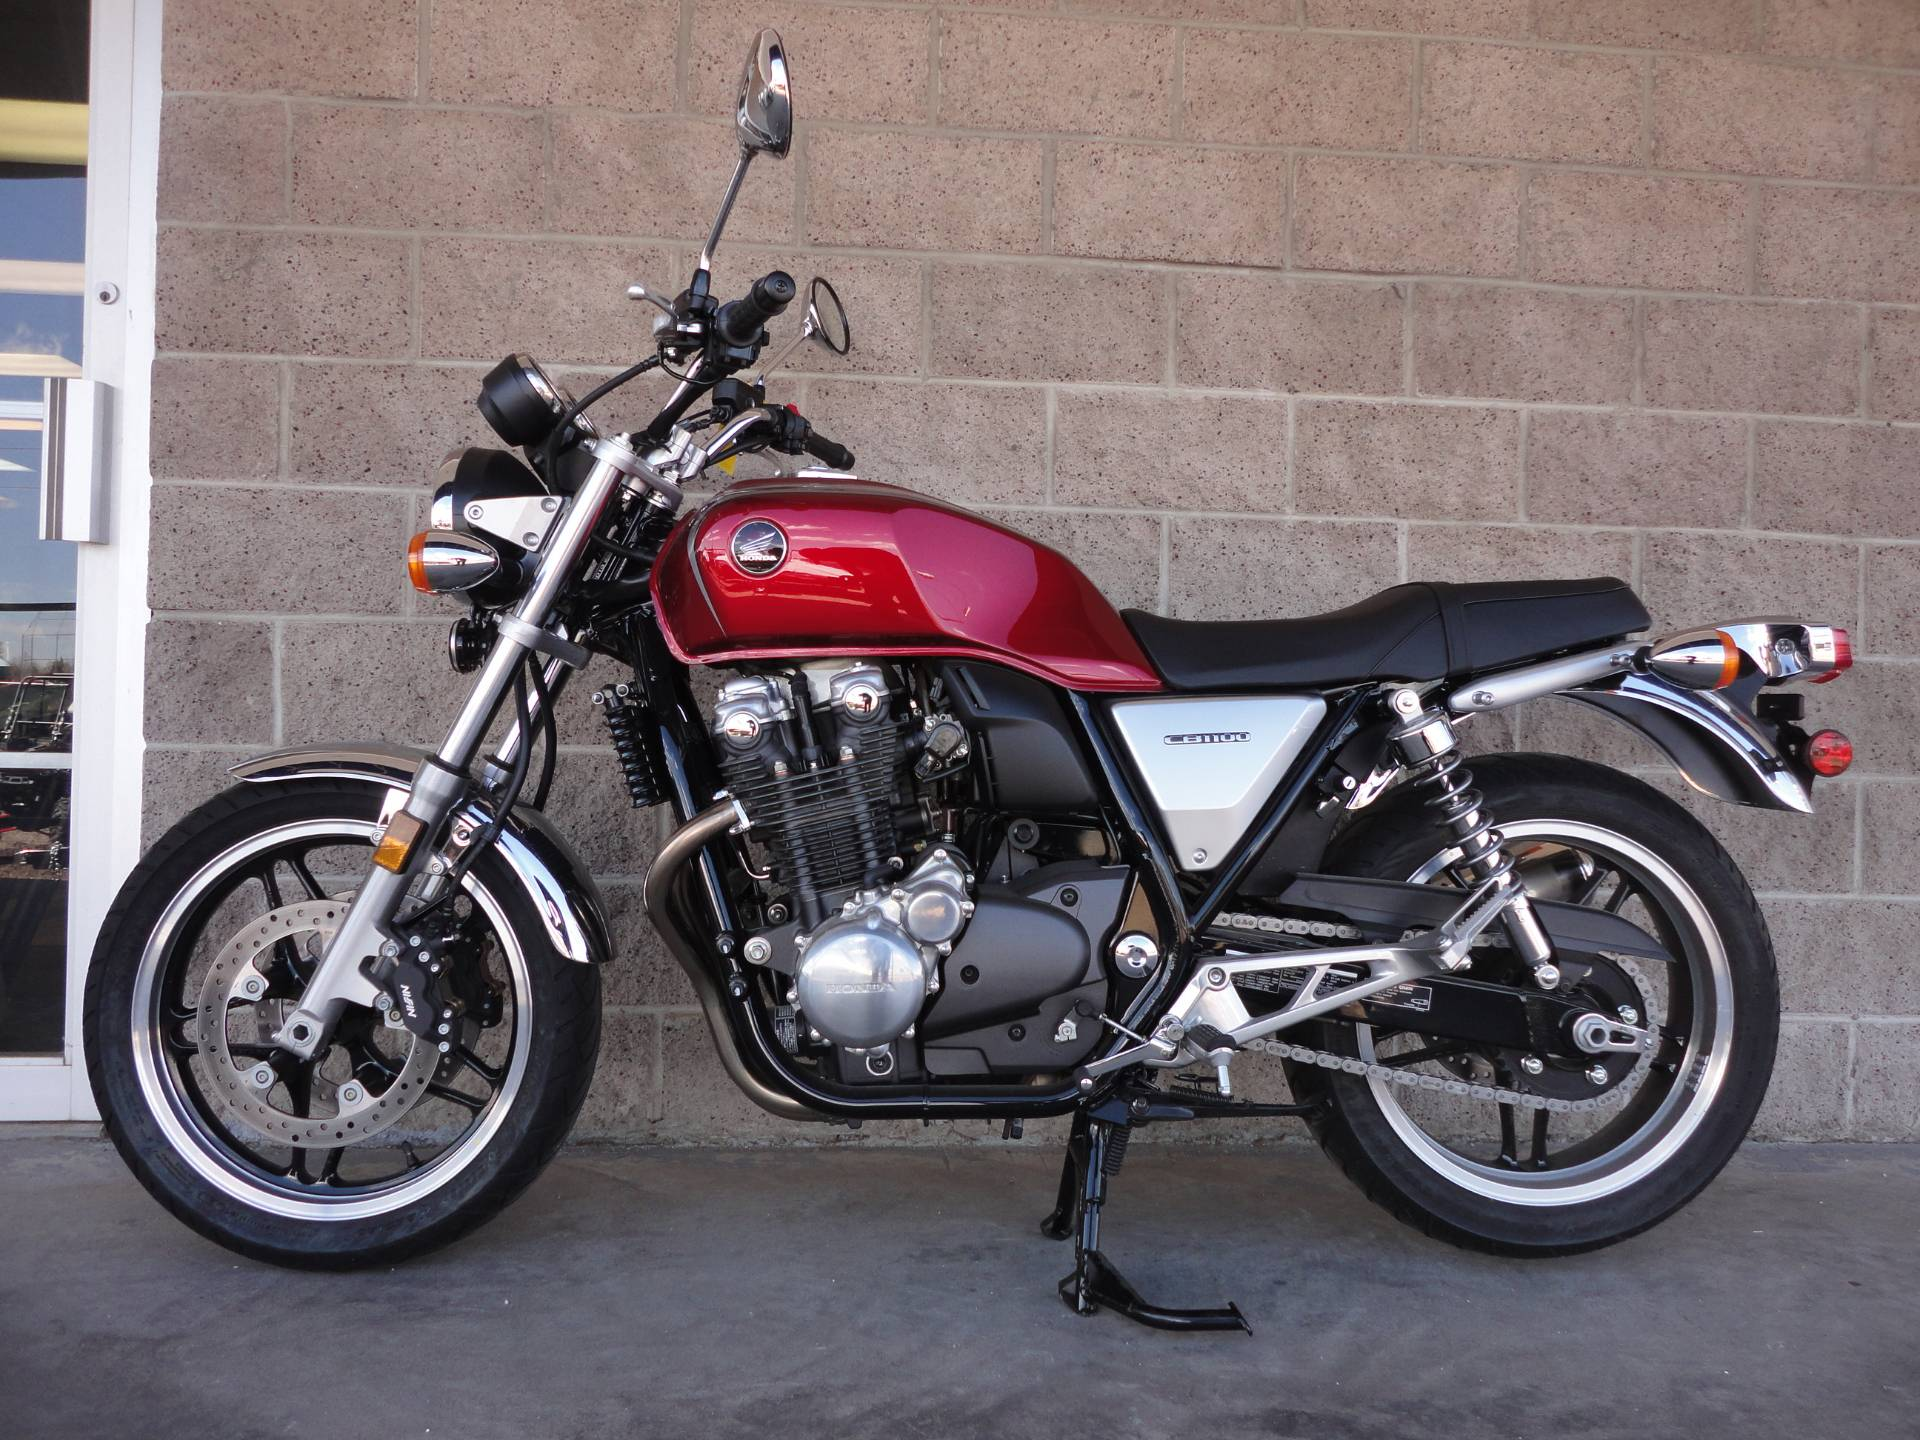 2013 Honda CB1100 in Denver, Colorado